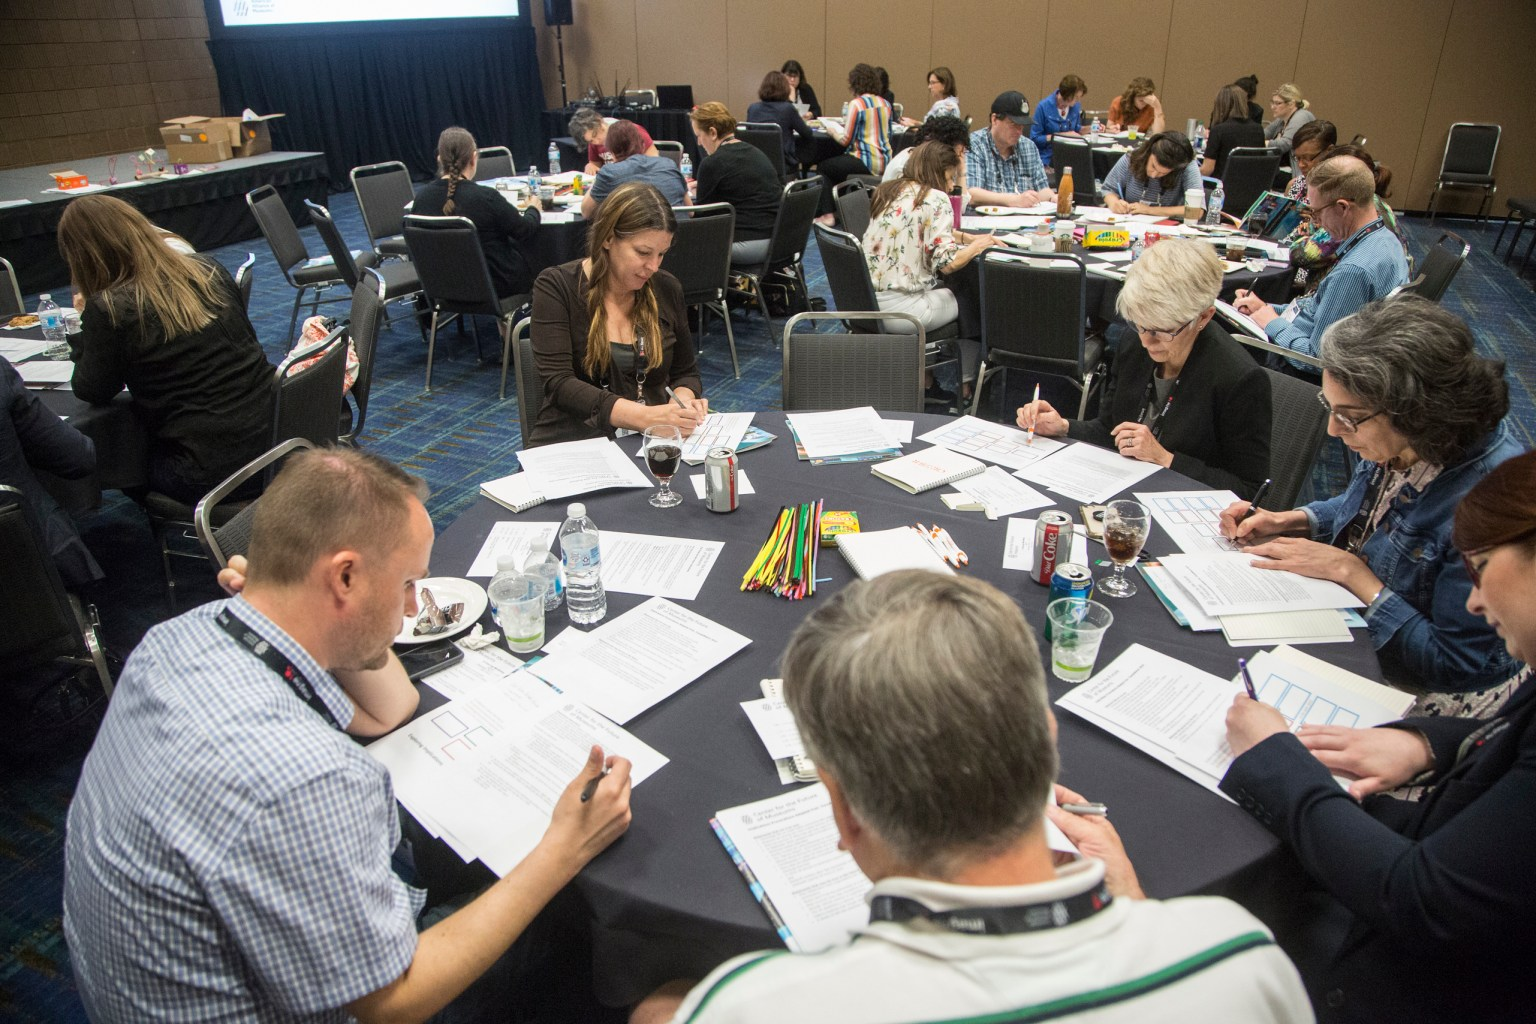 New Orleans, LA - AAM Annual Meeting and MuseumExpo 2019 - Speakers and Attendees during A Futuring Workshop at the American Alliance of Museums annual meeting at the Ernest Morial Convention center here today, Wednesday May 22, 2019. Since 1906 the Alliance has been a leader in developing best practices and advocating for museums, as well as providing a host of opportunities to museum staff and volunteers. Photo by © AAM/Matt Herp 2019 Contact Info: todd@corporateeventmages.com